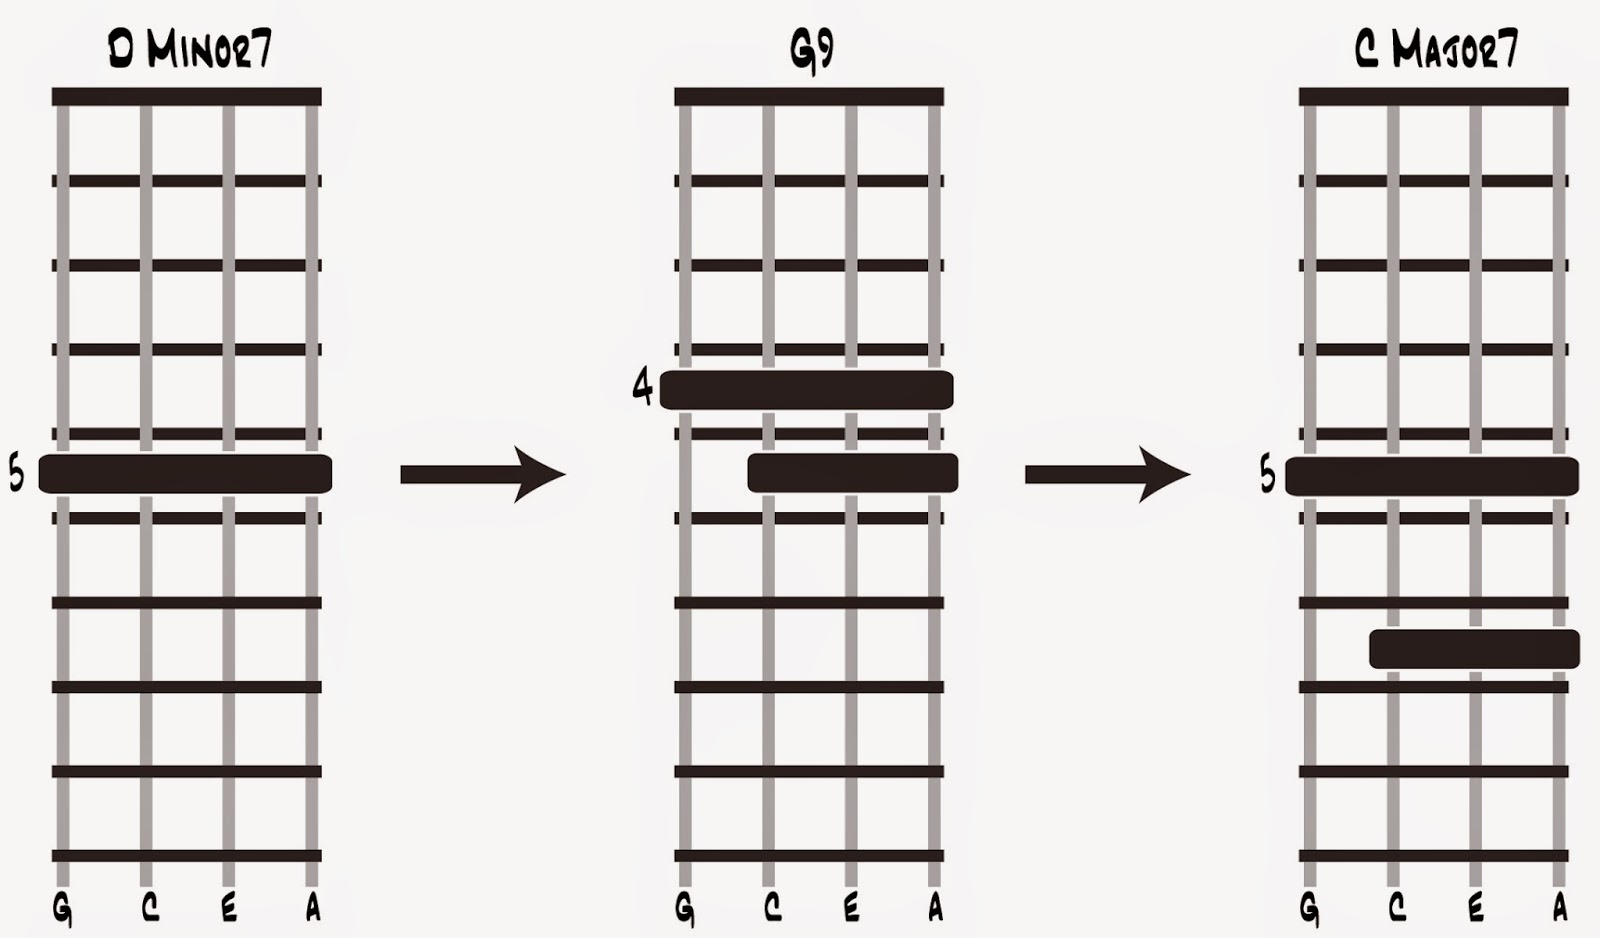 Cognition and reality coltrane changes on the ukulele closed form ukulele chords for the ii v i progression in the key of c major see text for details hexwebz Choice Image